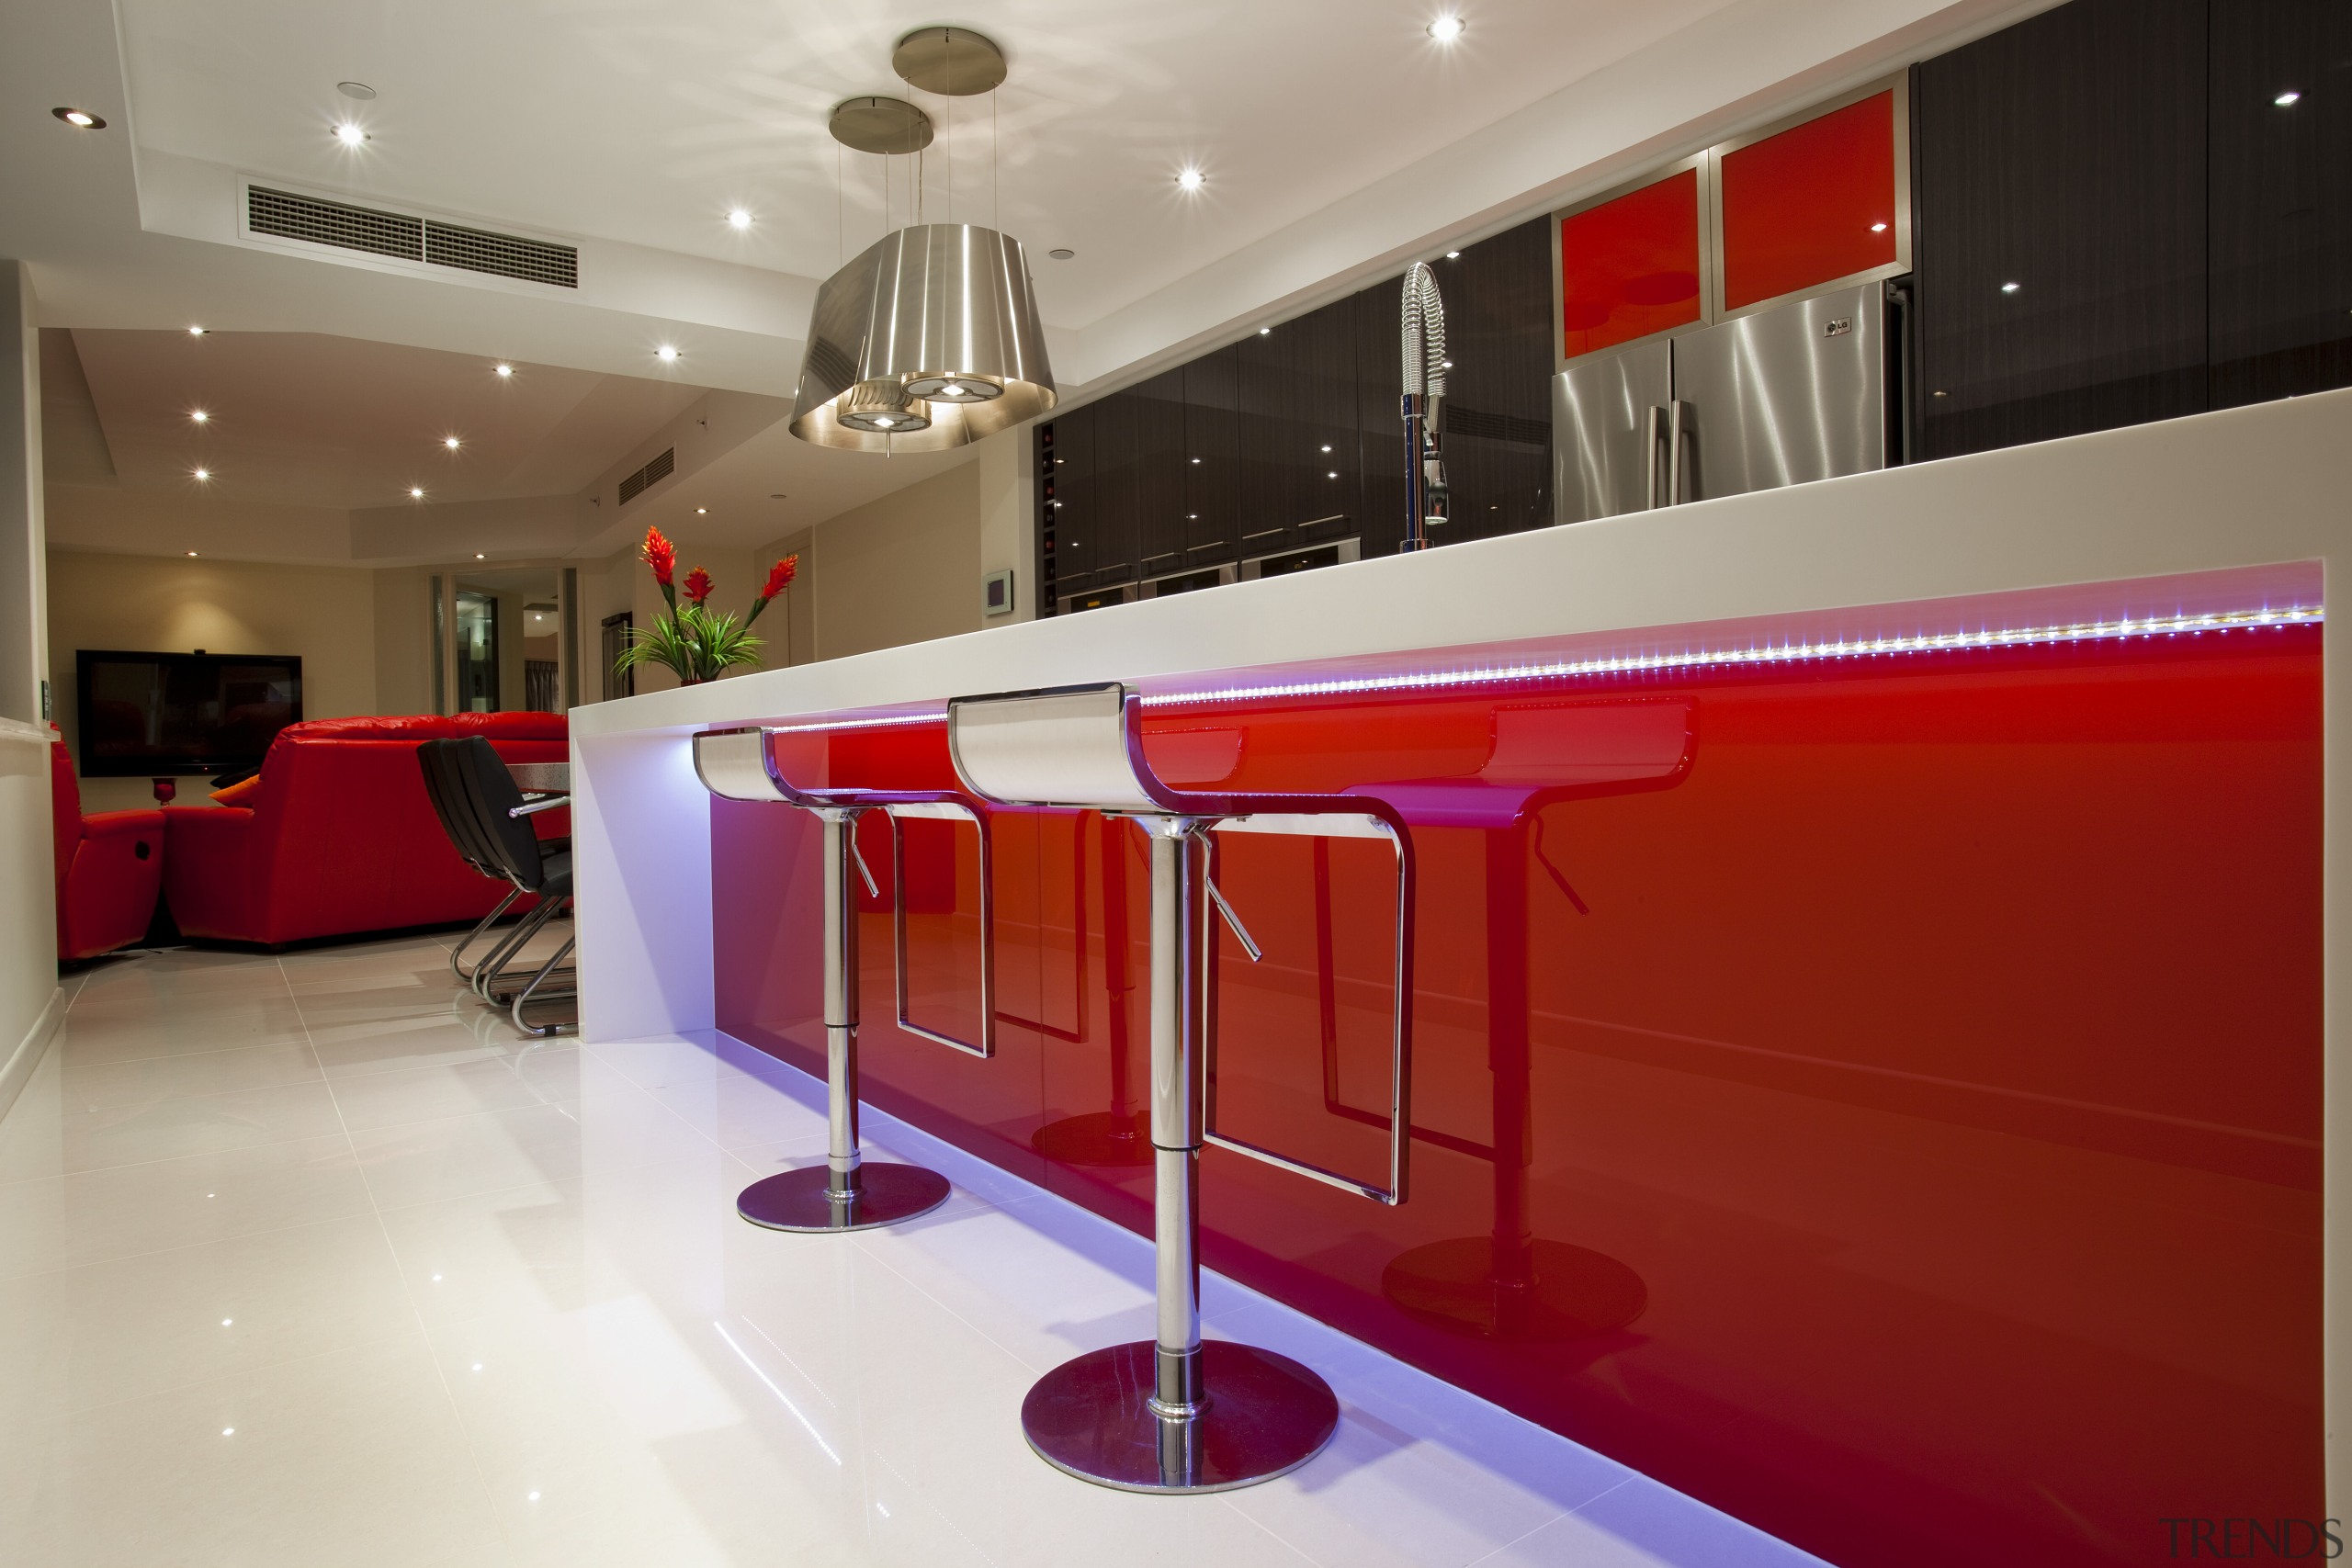 Kitchen Connection Gold Coast created a high-impact, low-maintenance architecture, ceiling, countertop, floor, flooring, interior design, kitchen, lighting, product design, red, gray